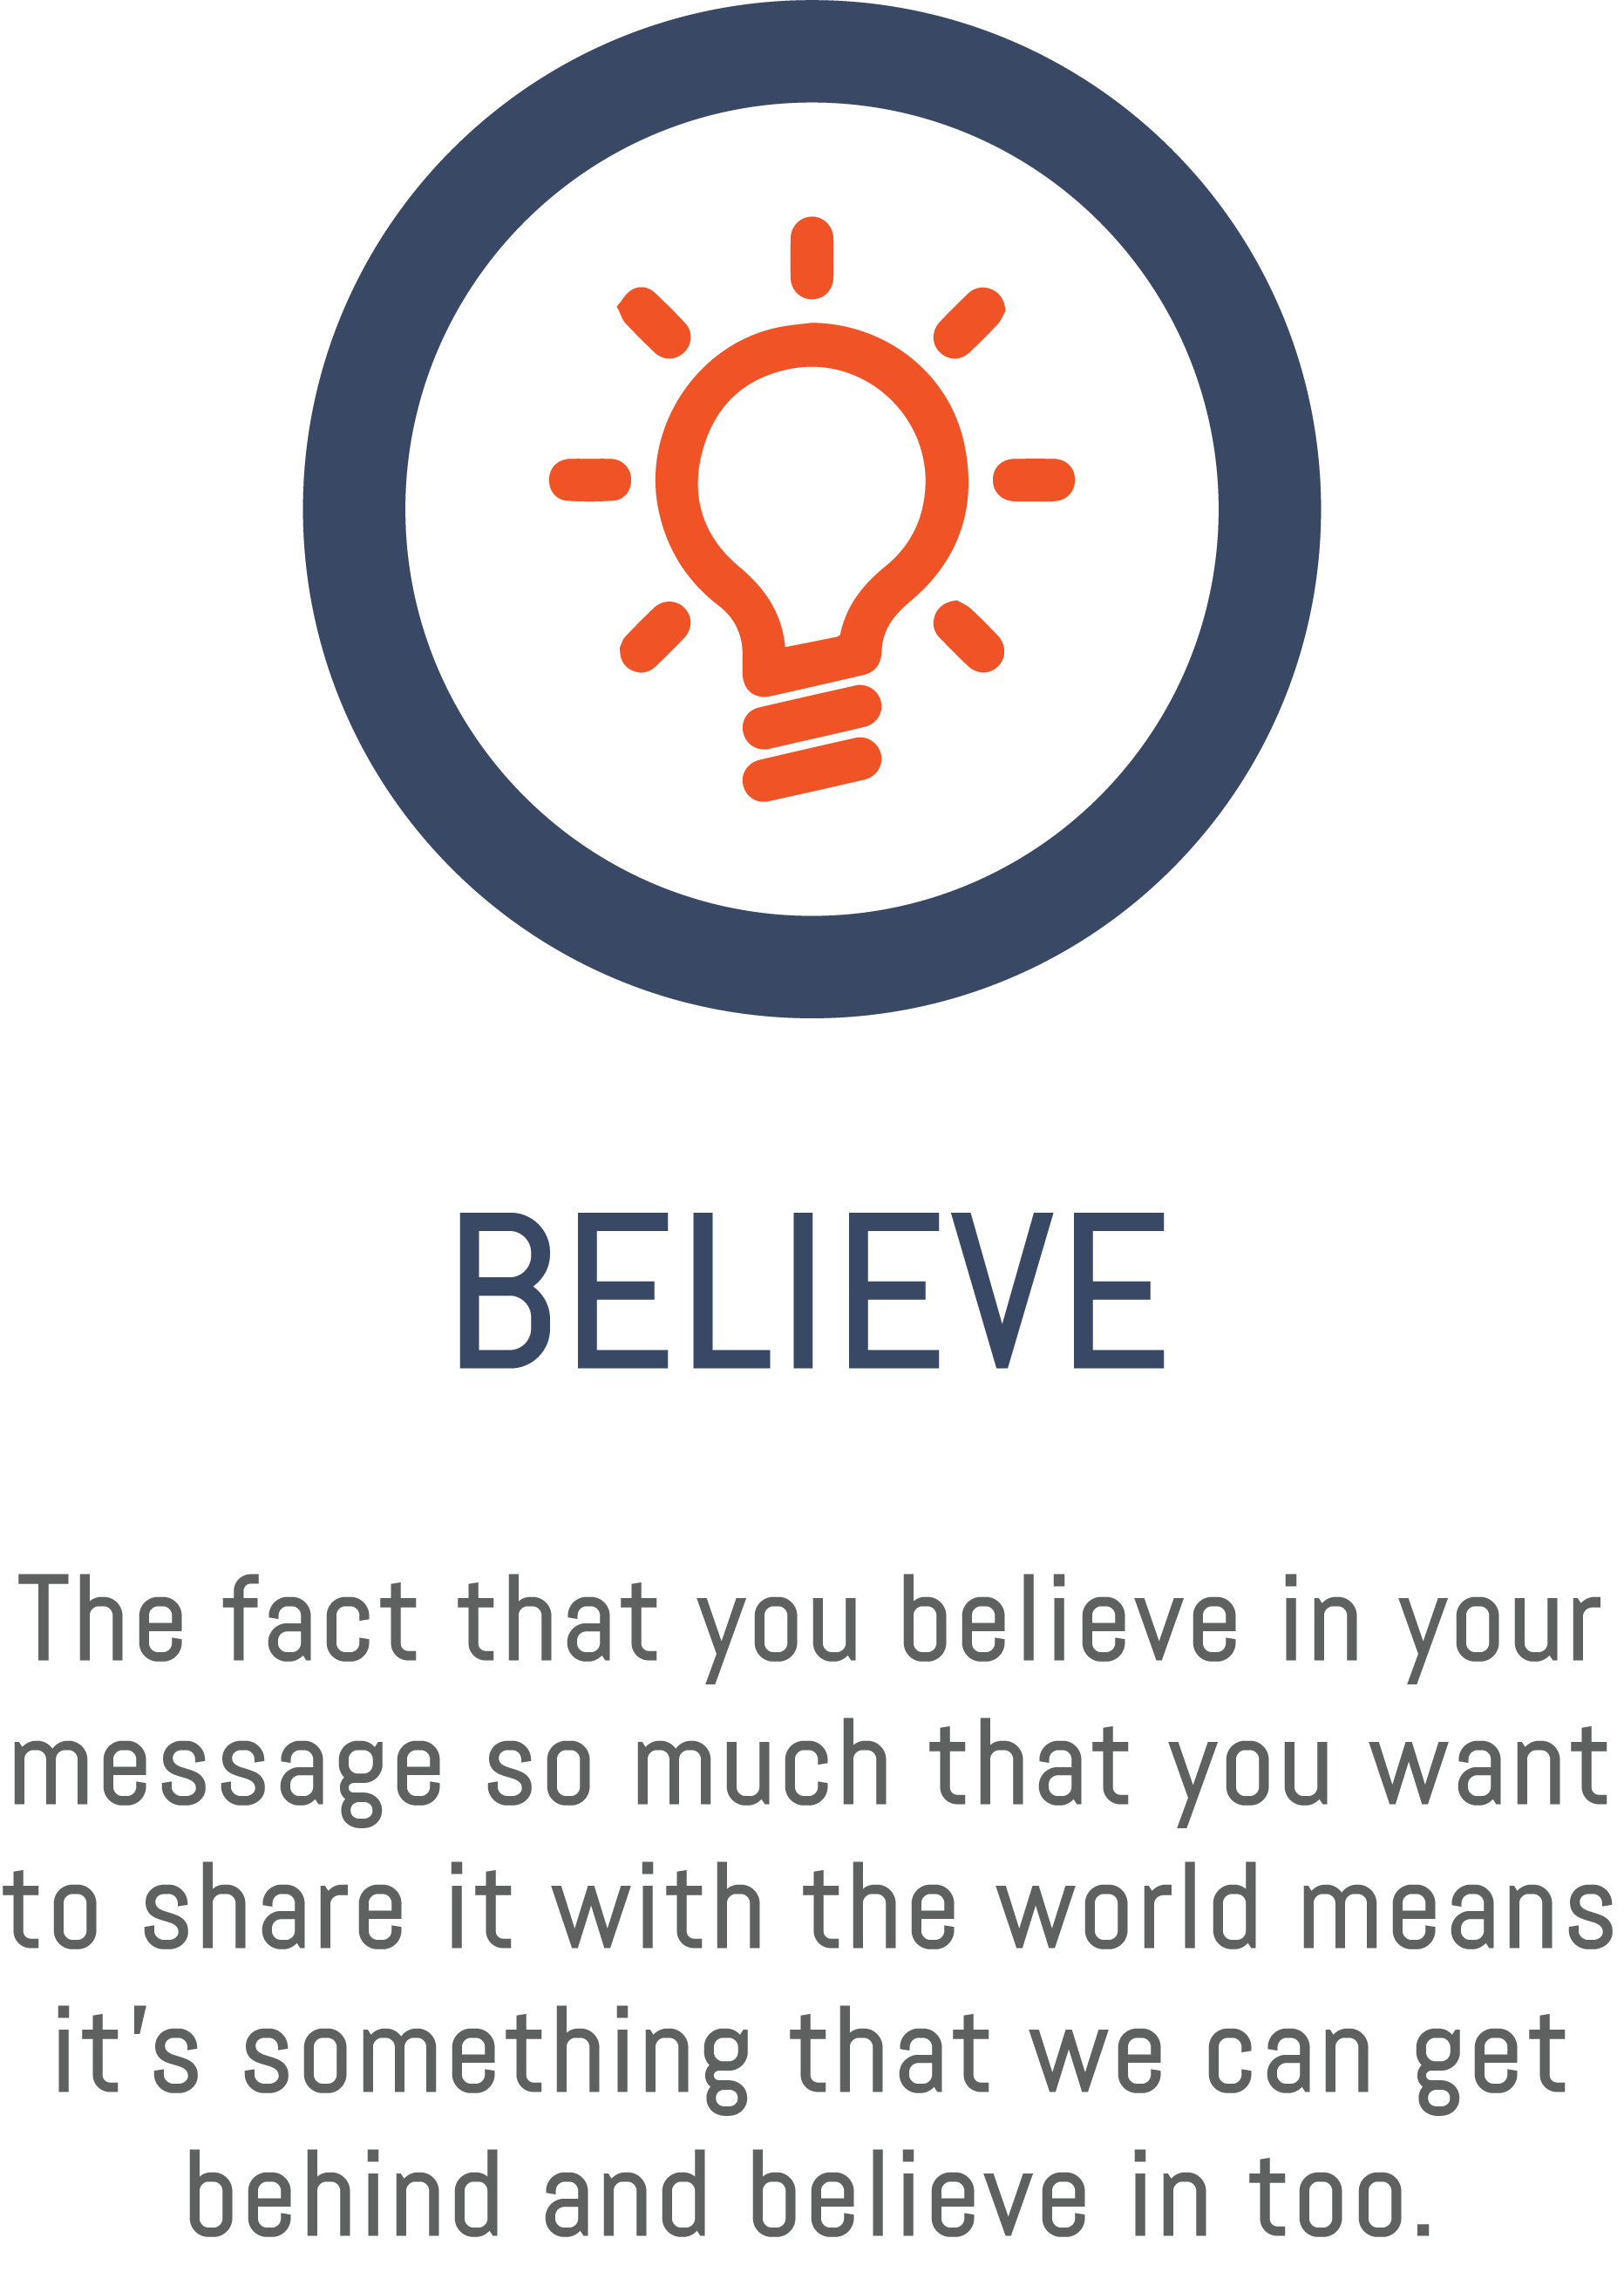 Believe-icon-2018.png